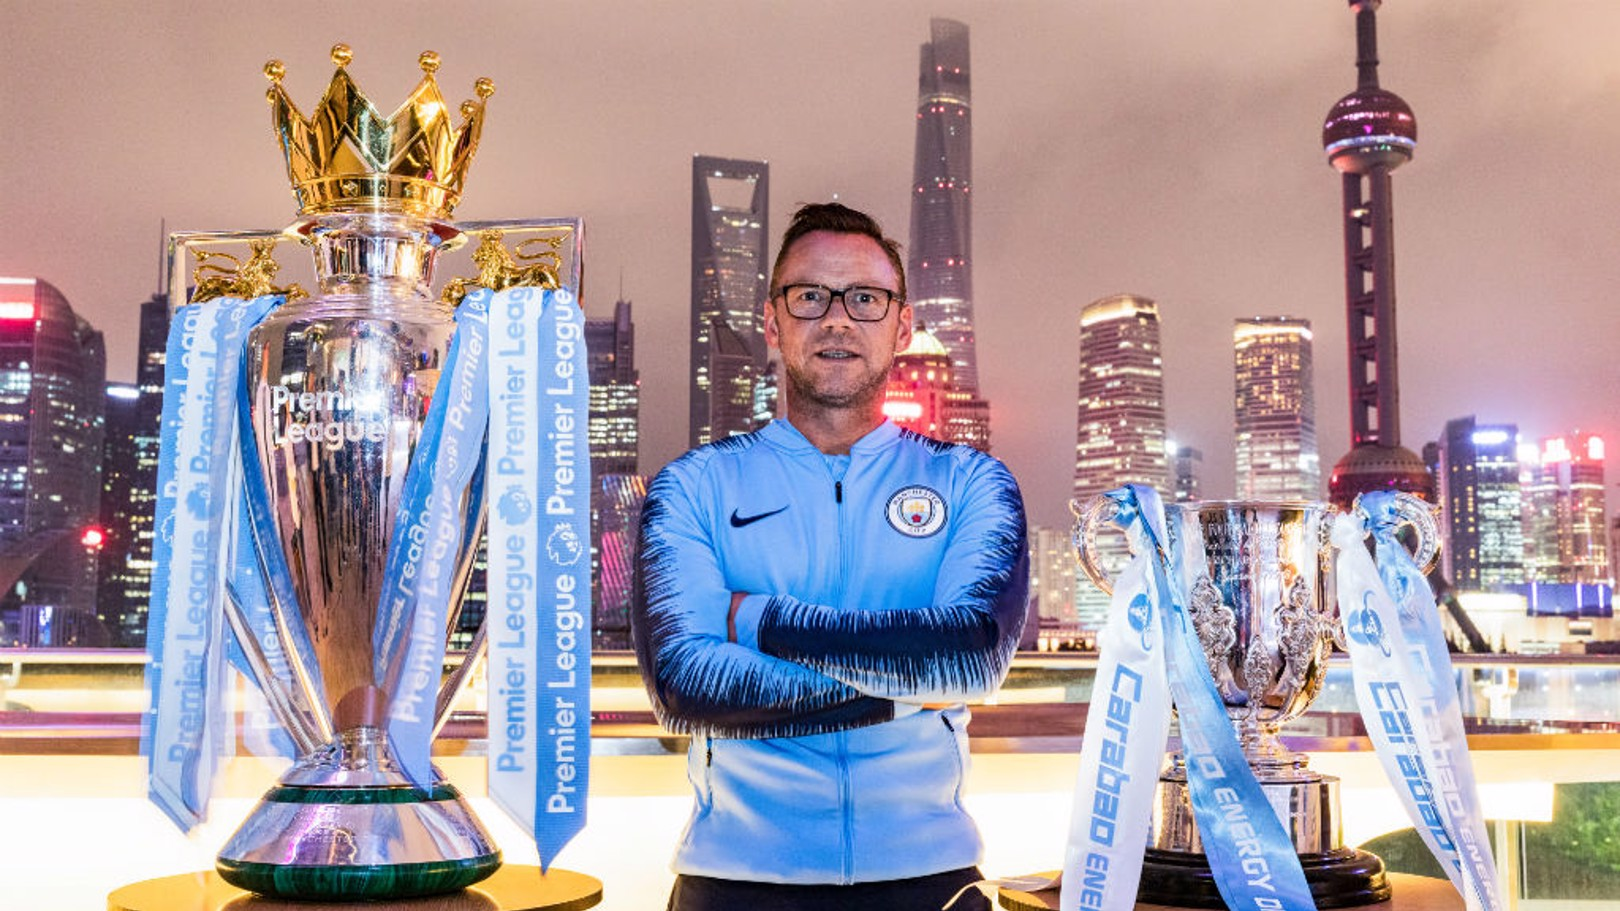 WORLD TOUR: Paul Dickov with City's silverware in Shanghai